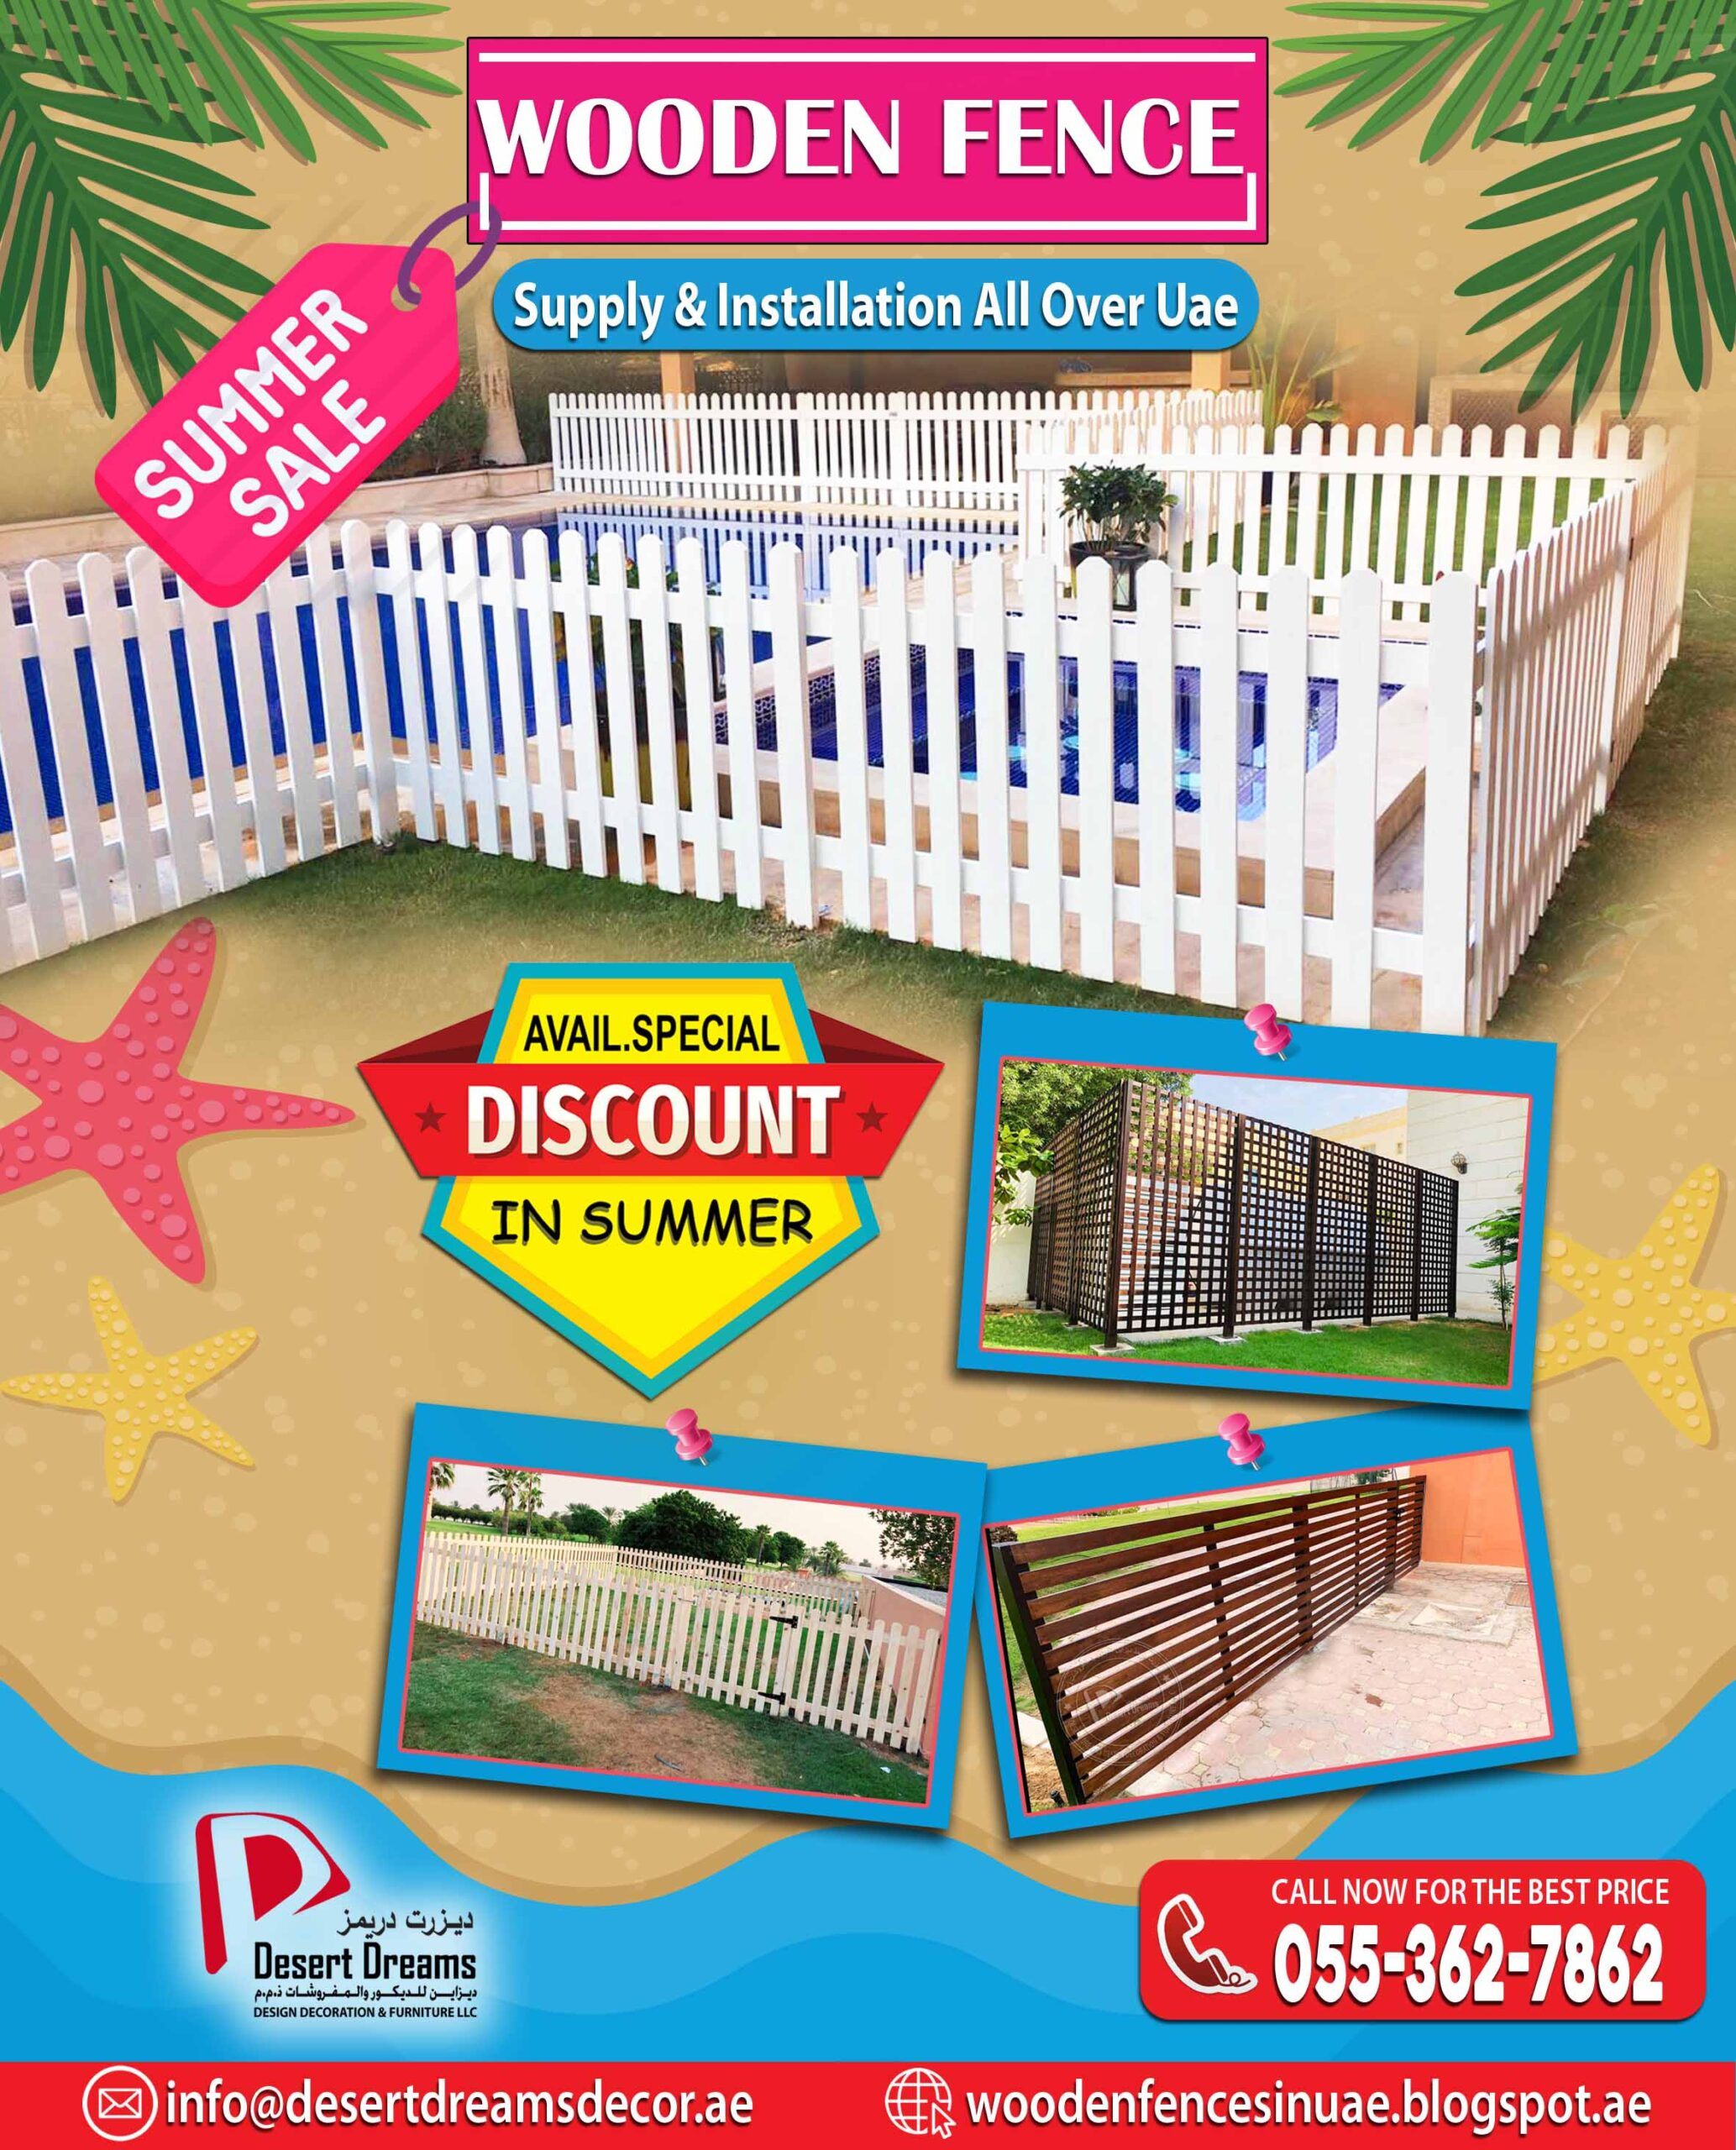 Summer Sale Fence in UAE_Desert Dreams Decor.jpg